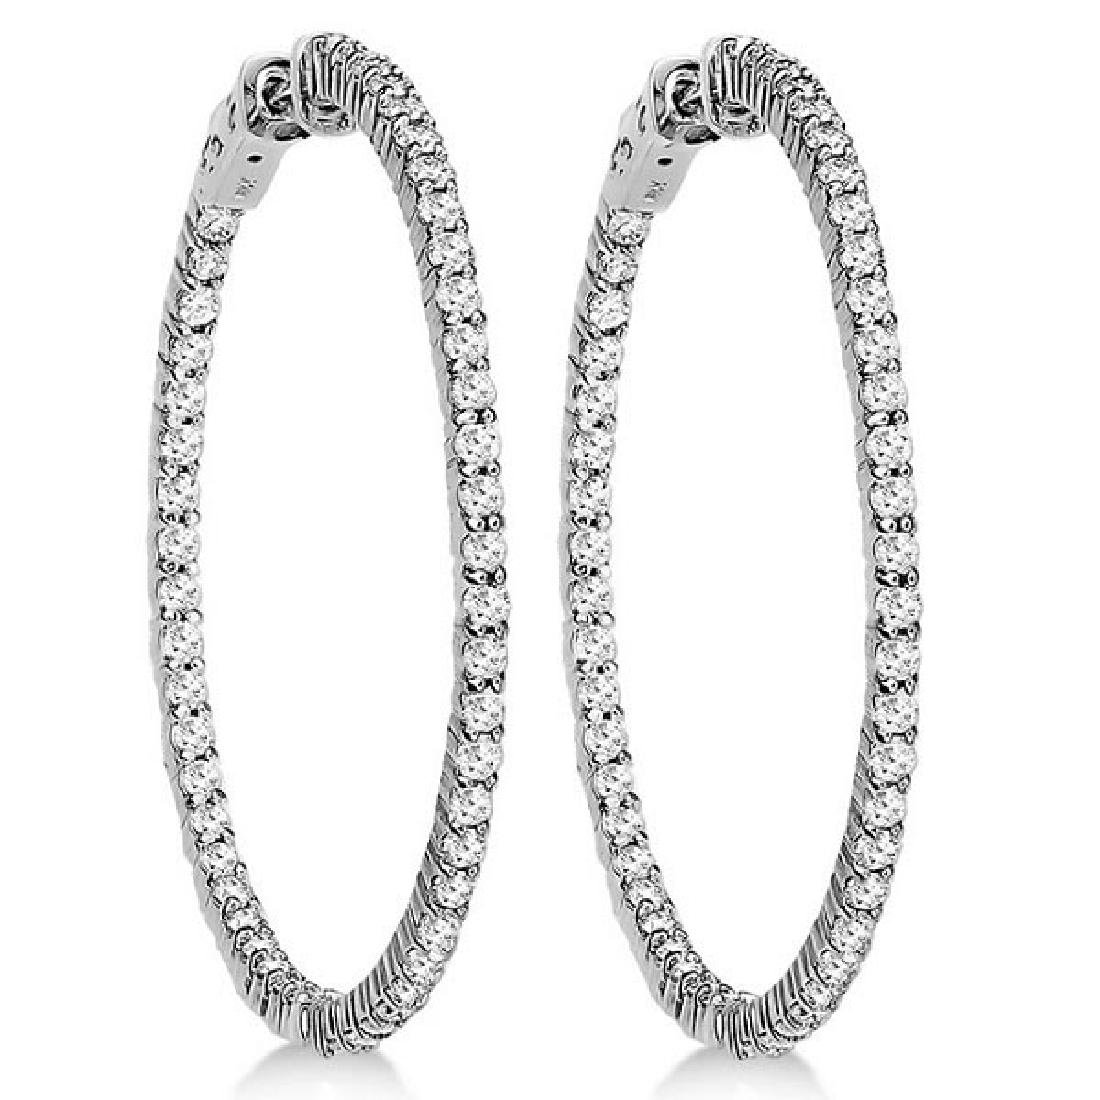 Prong-Set Diamond Hoop Earrings in 14k White Gold (3.00